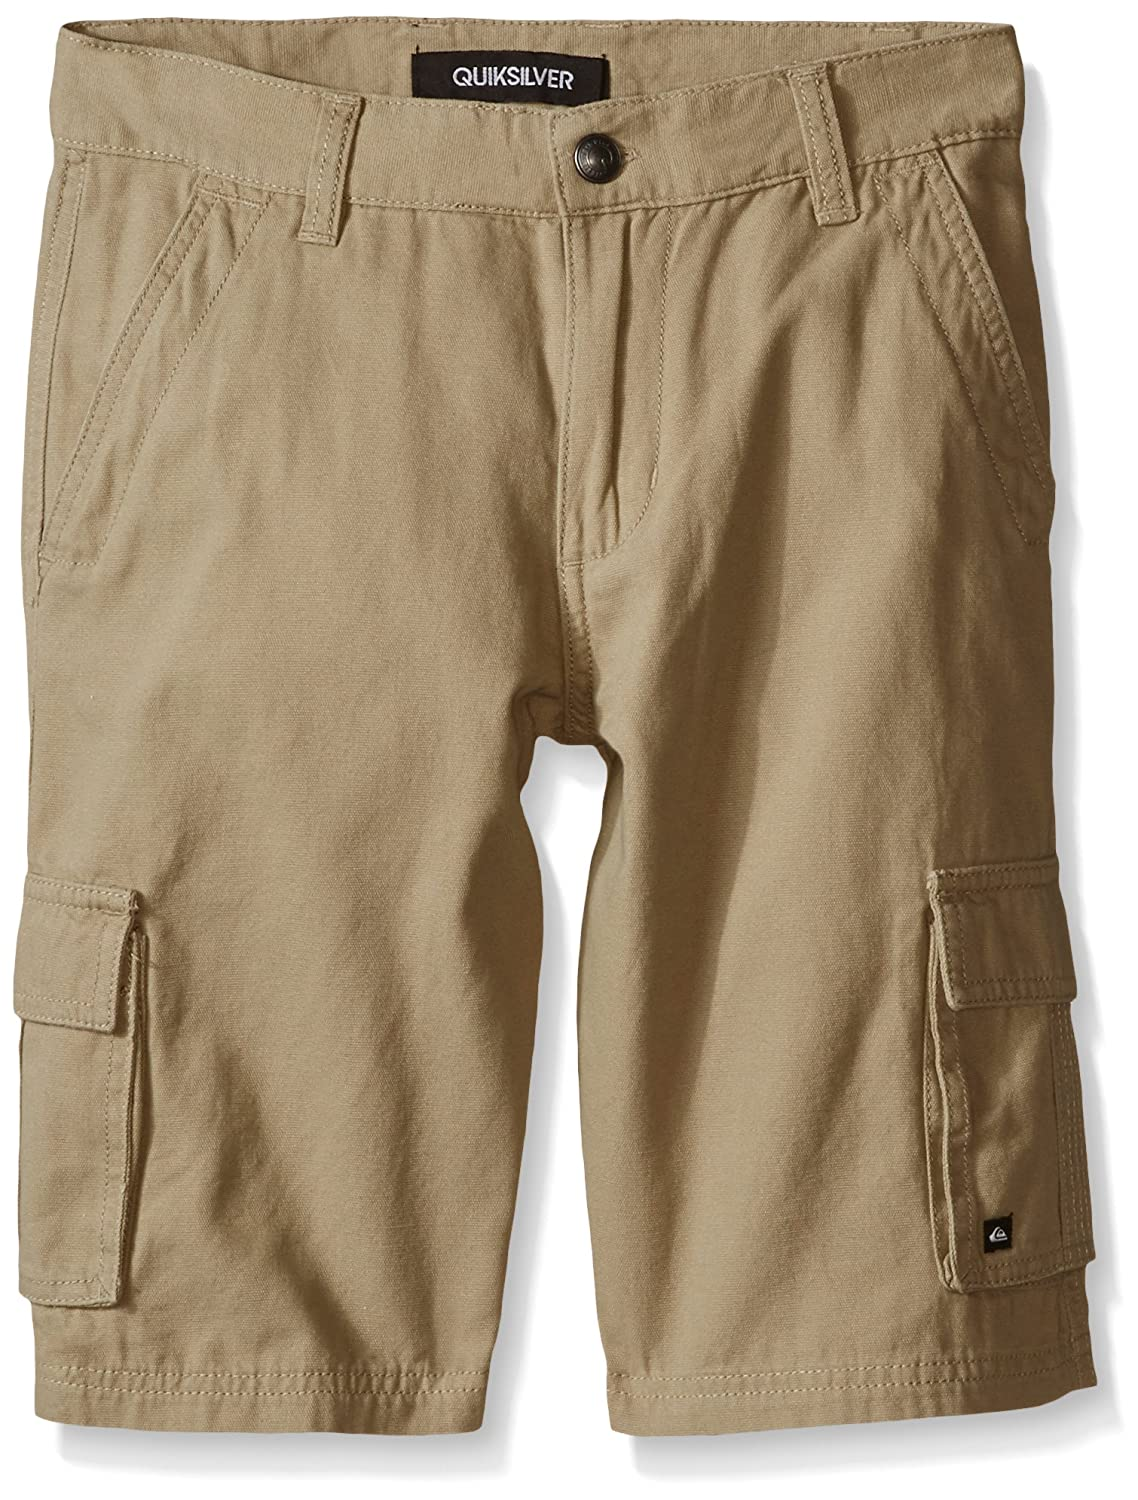 Quiksilver SHORTS ボーイズ